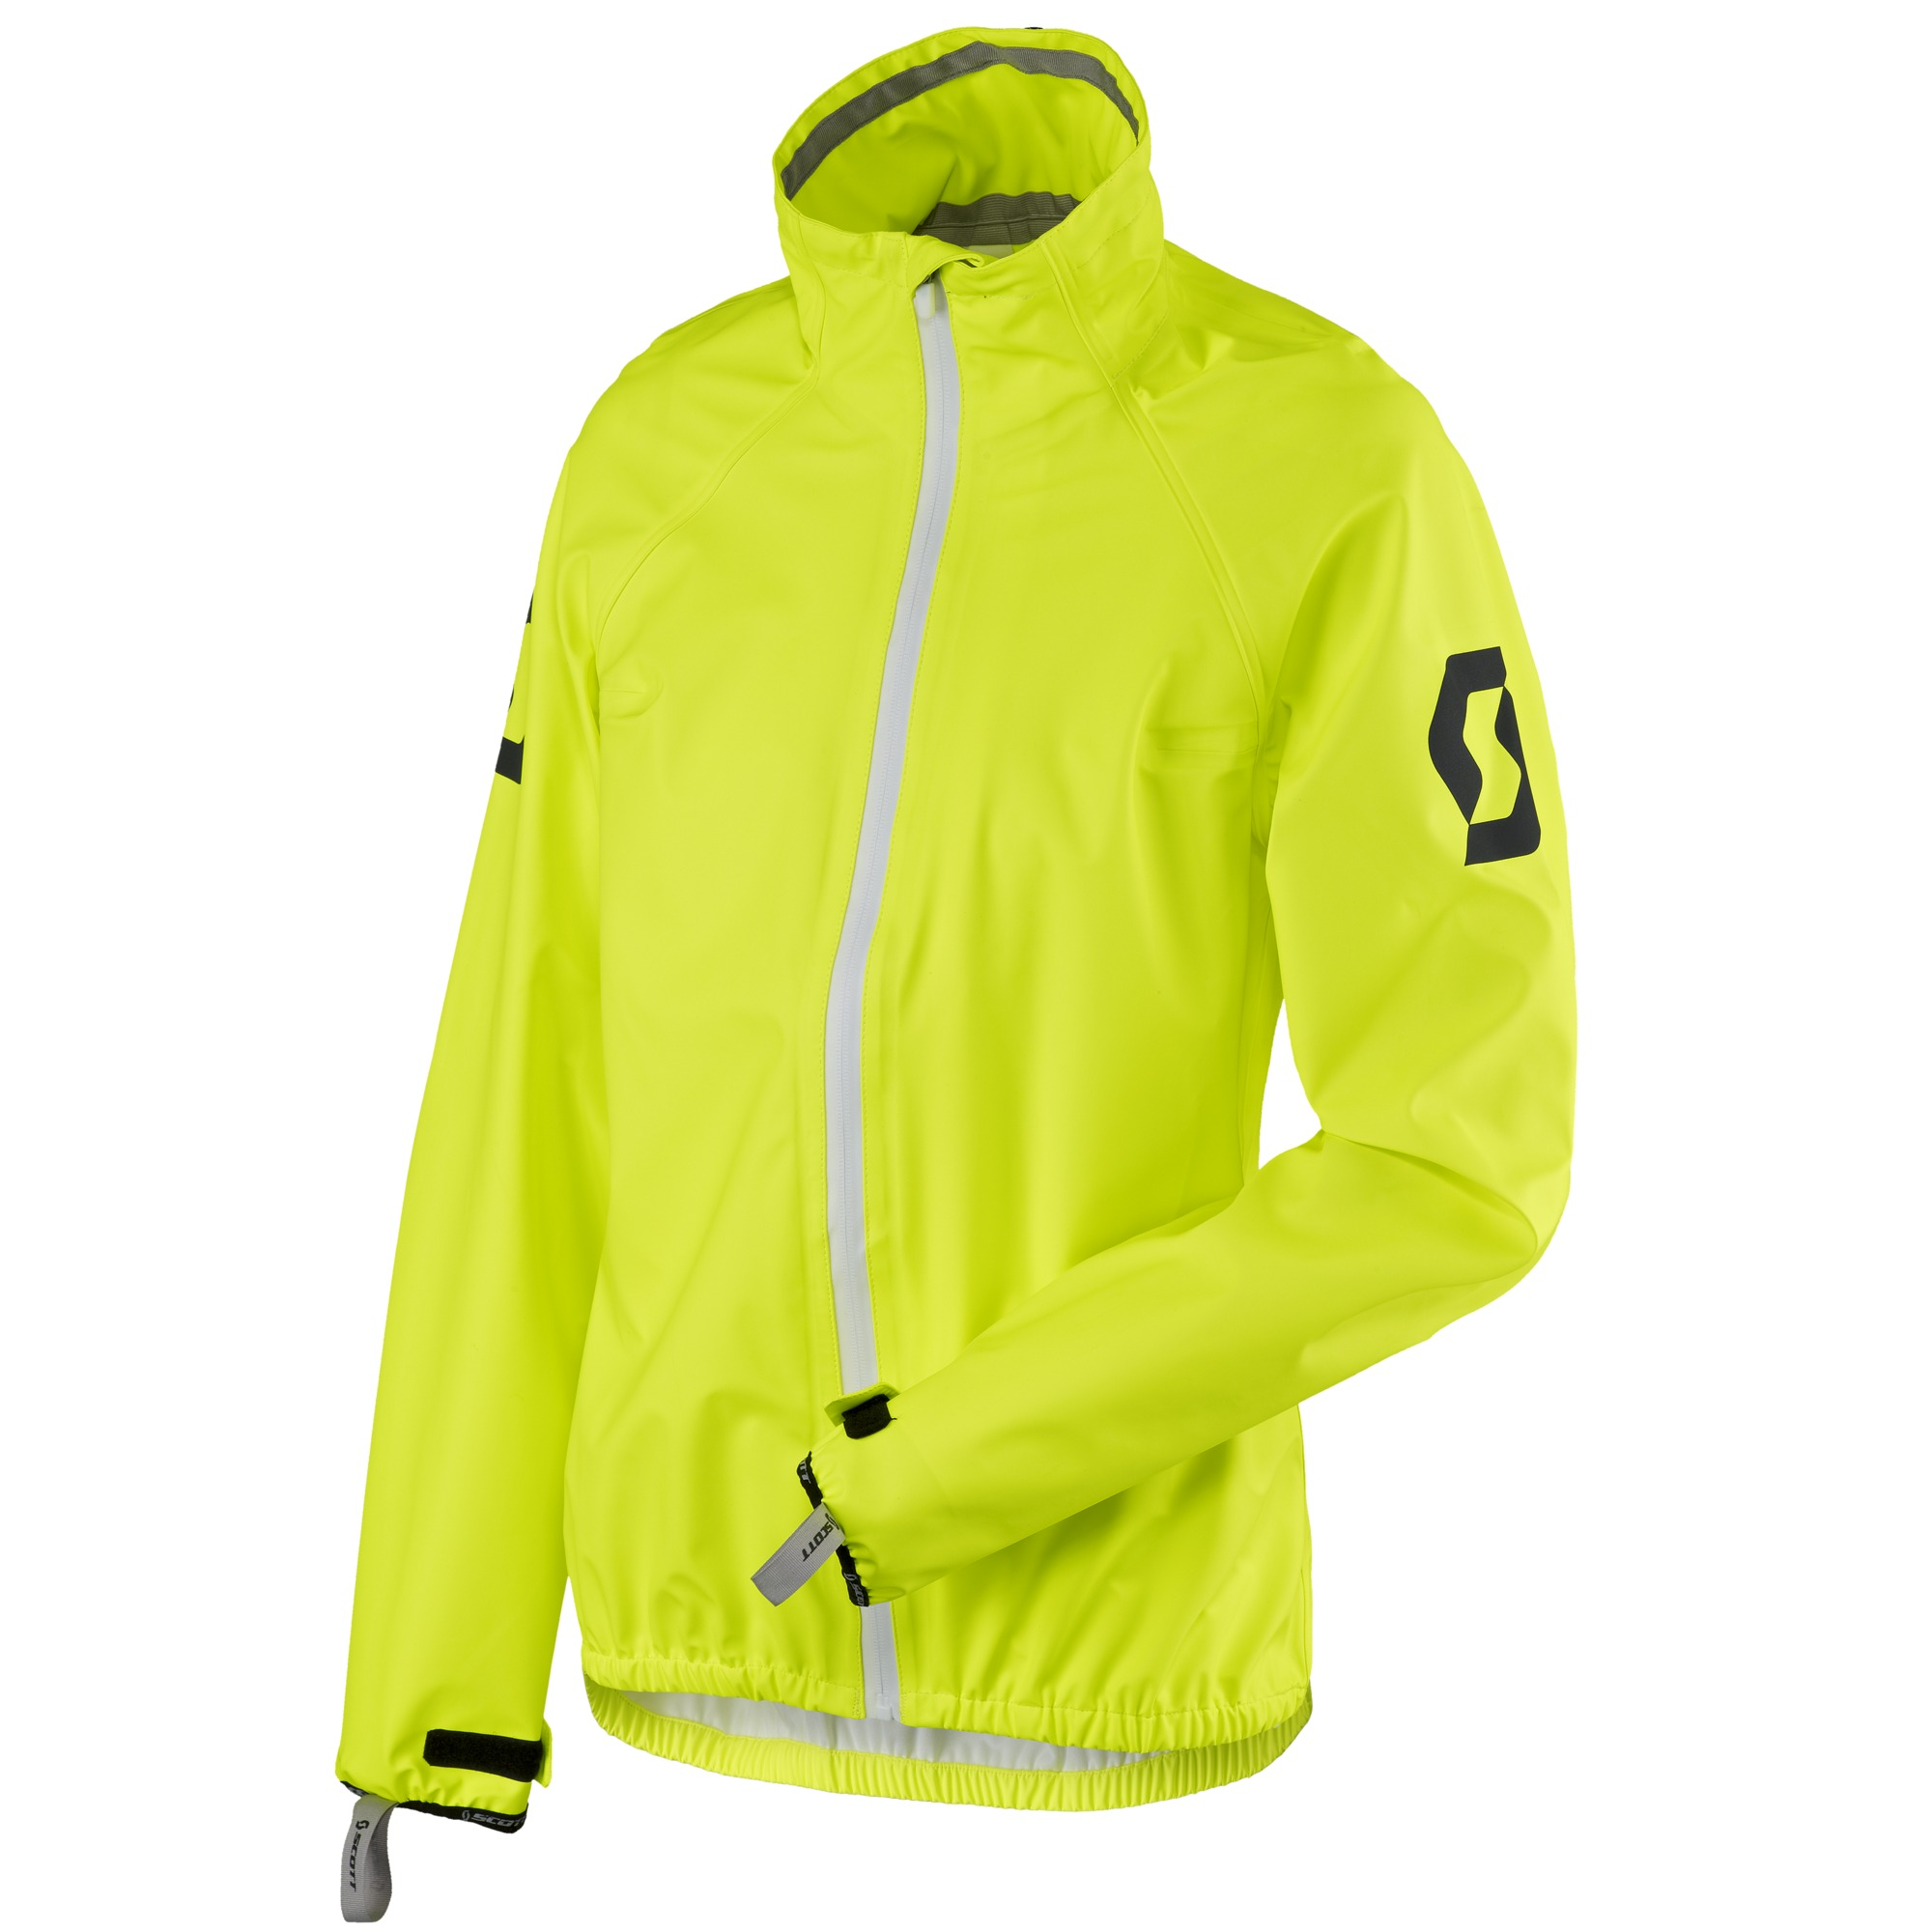 SCOTT Ergonomic Pro DP Women's Rain Jack